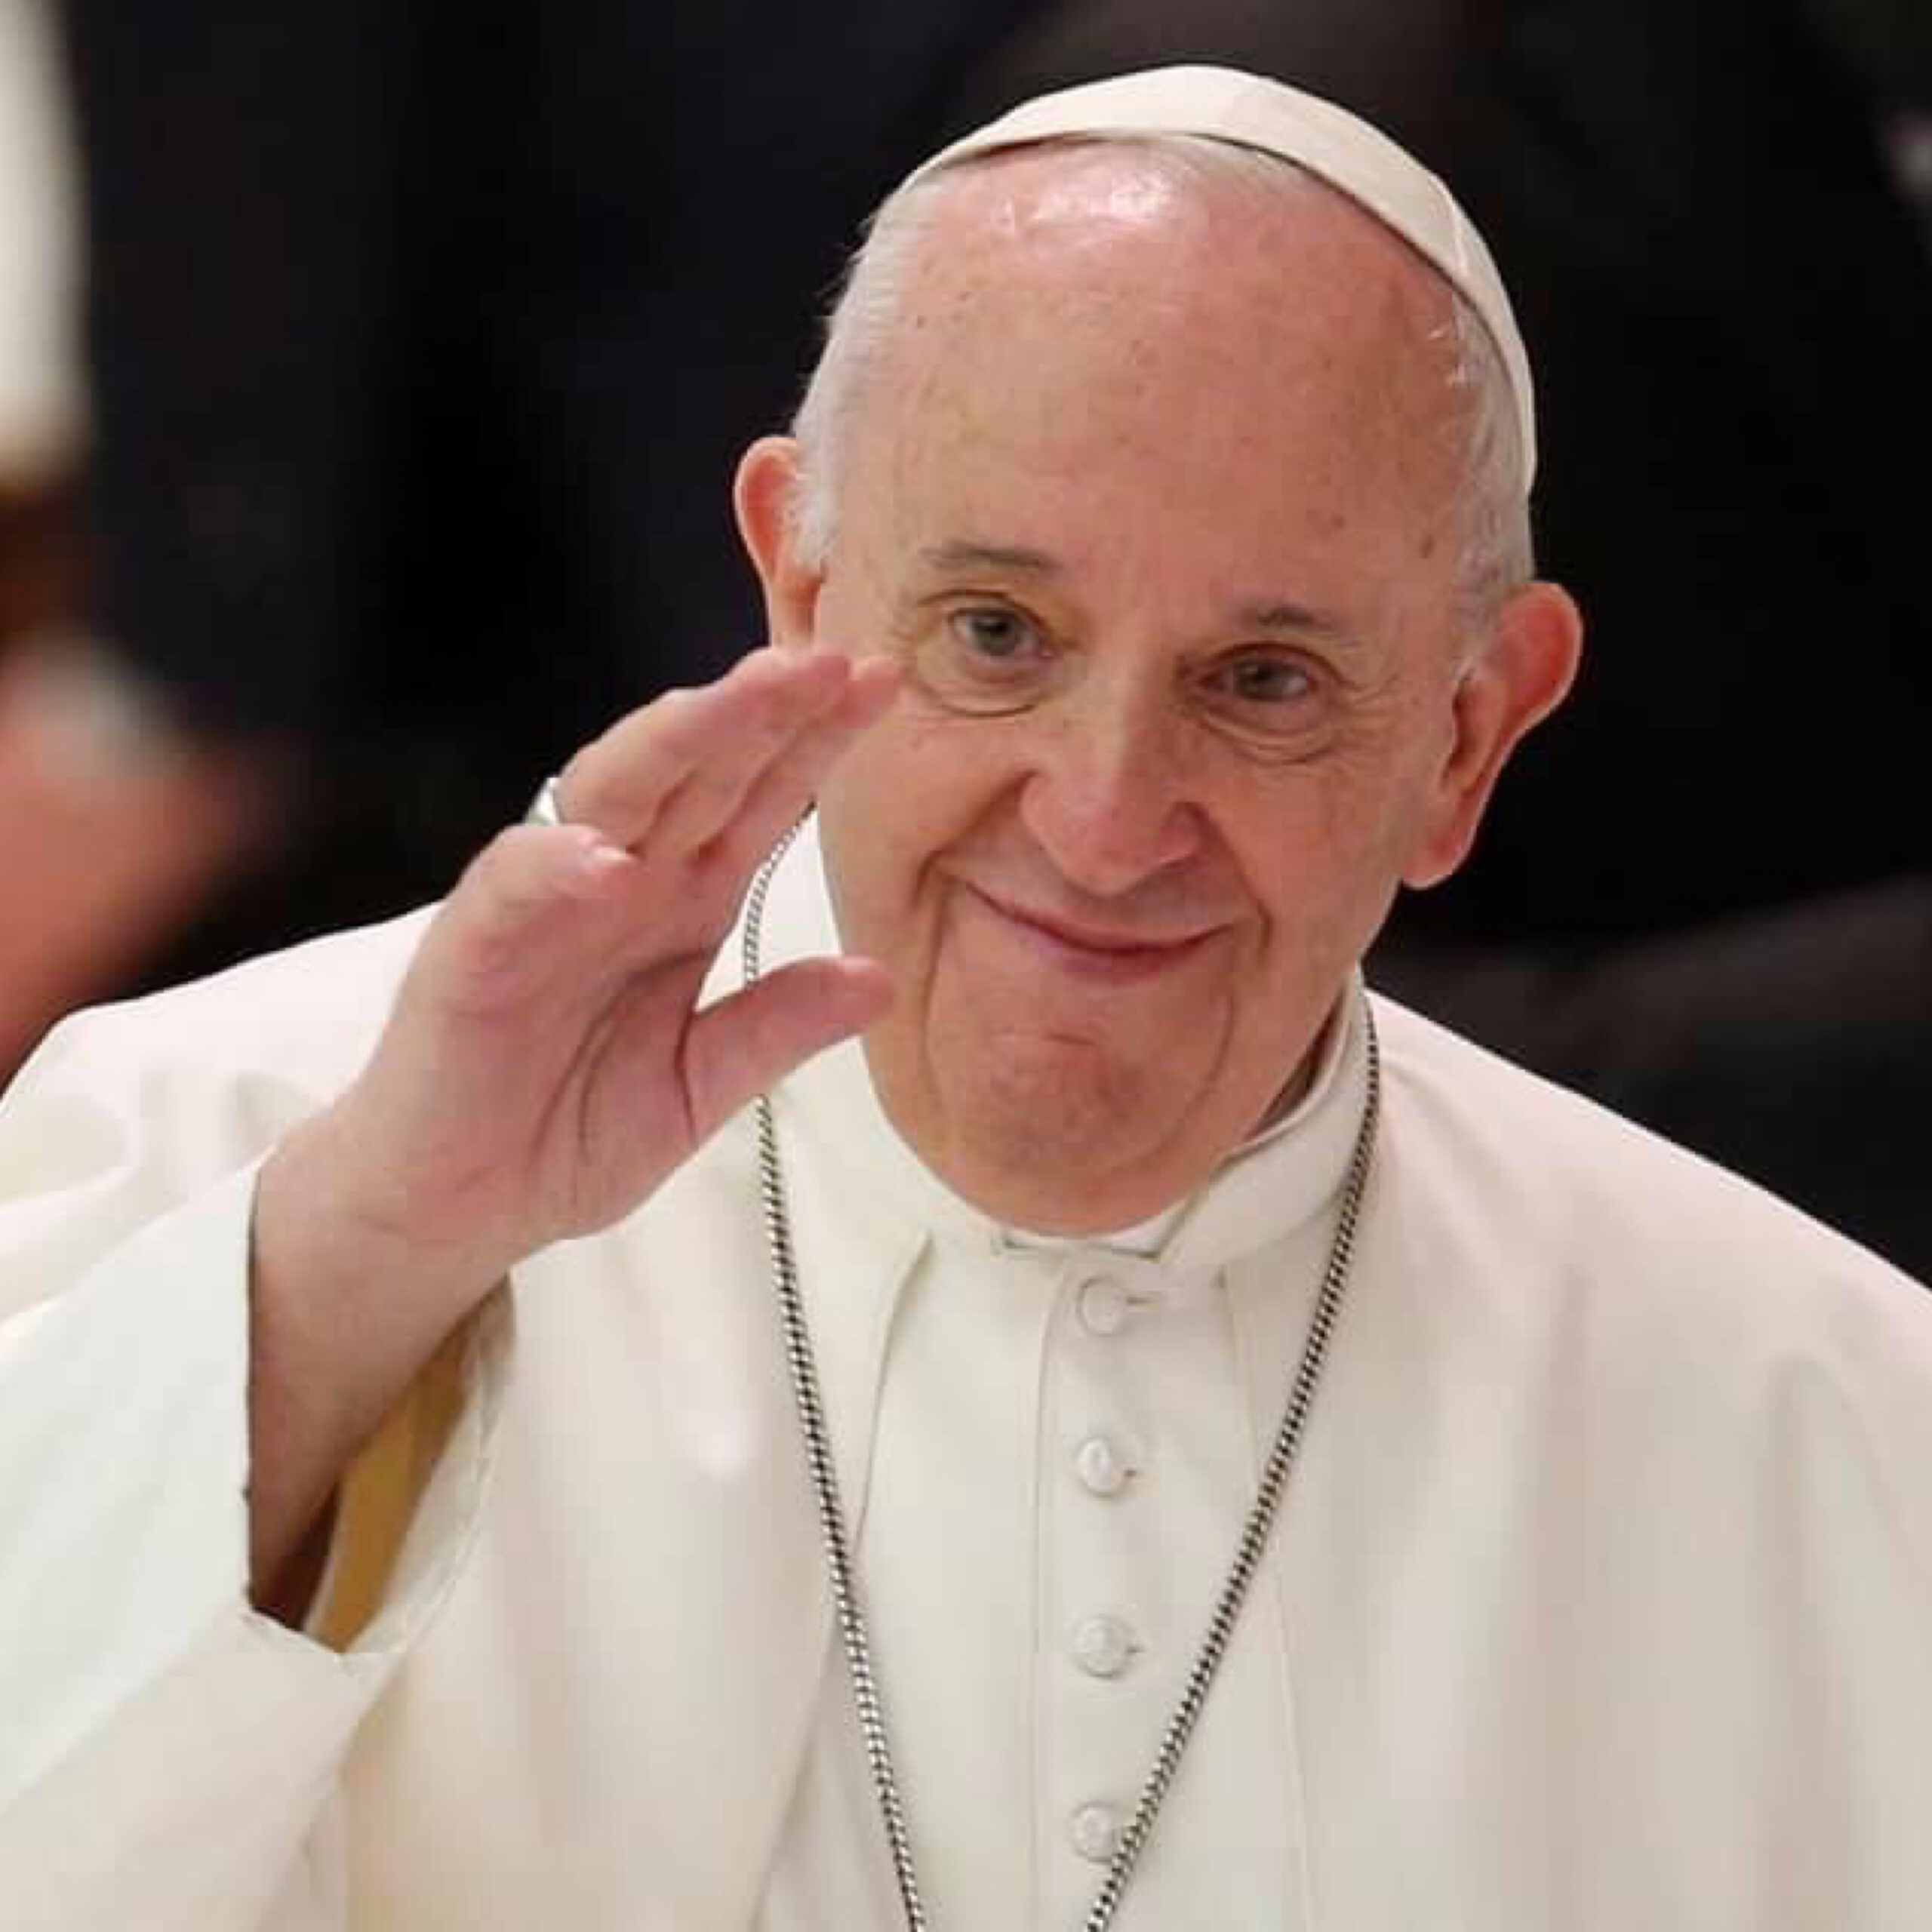 Photo of Pope Francis declares support for same-sex civil unions for the first time as pope